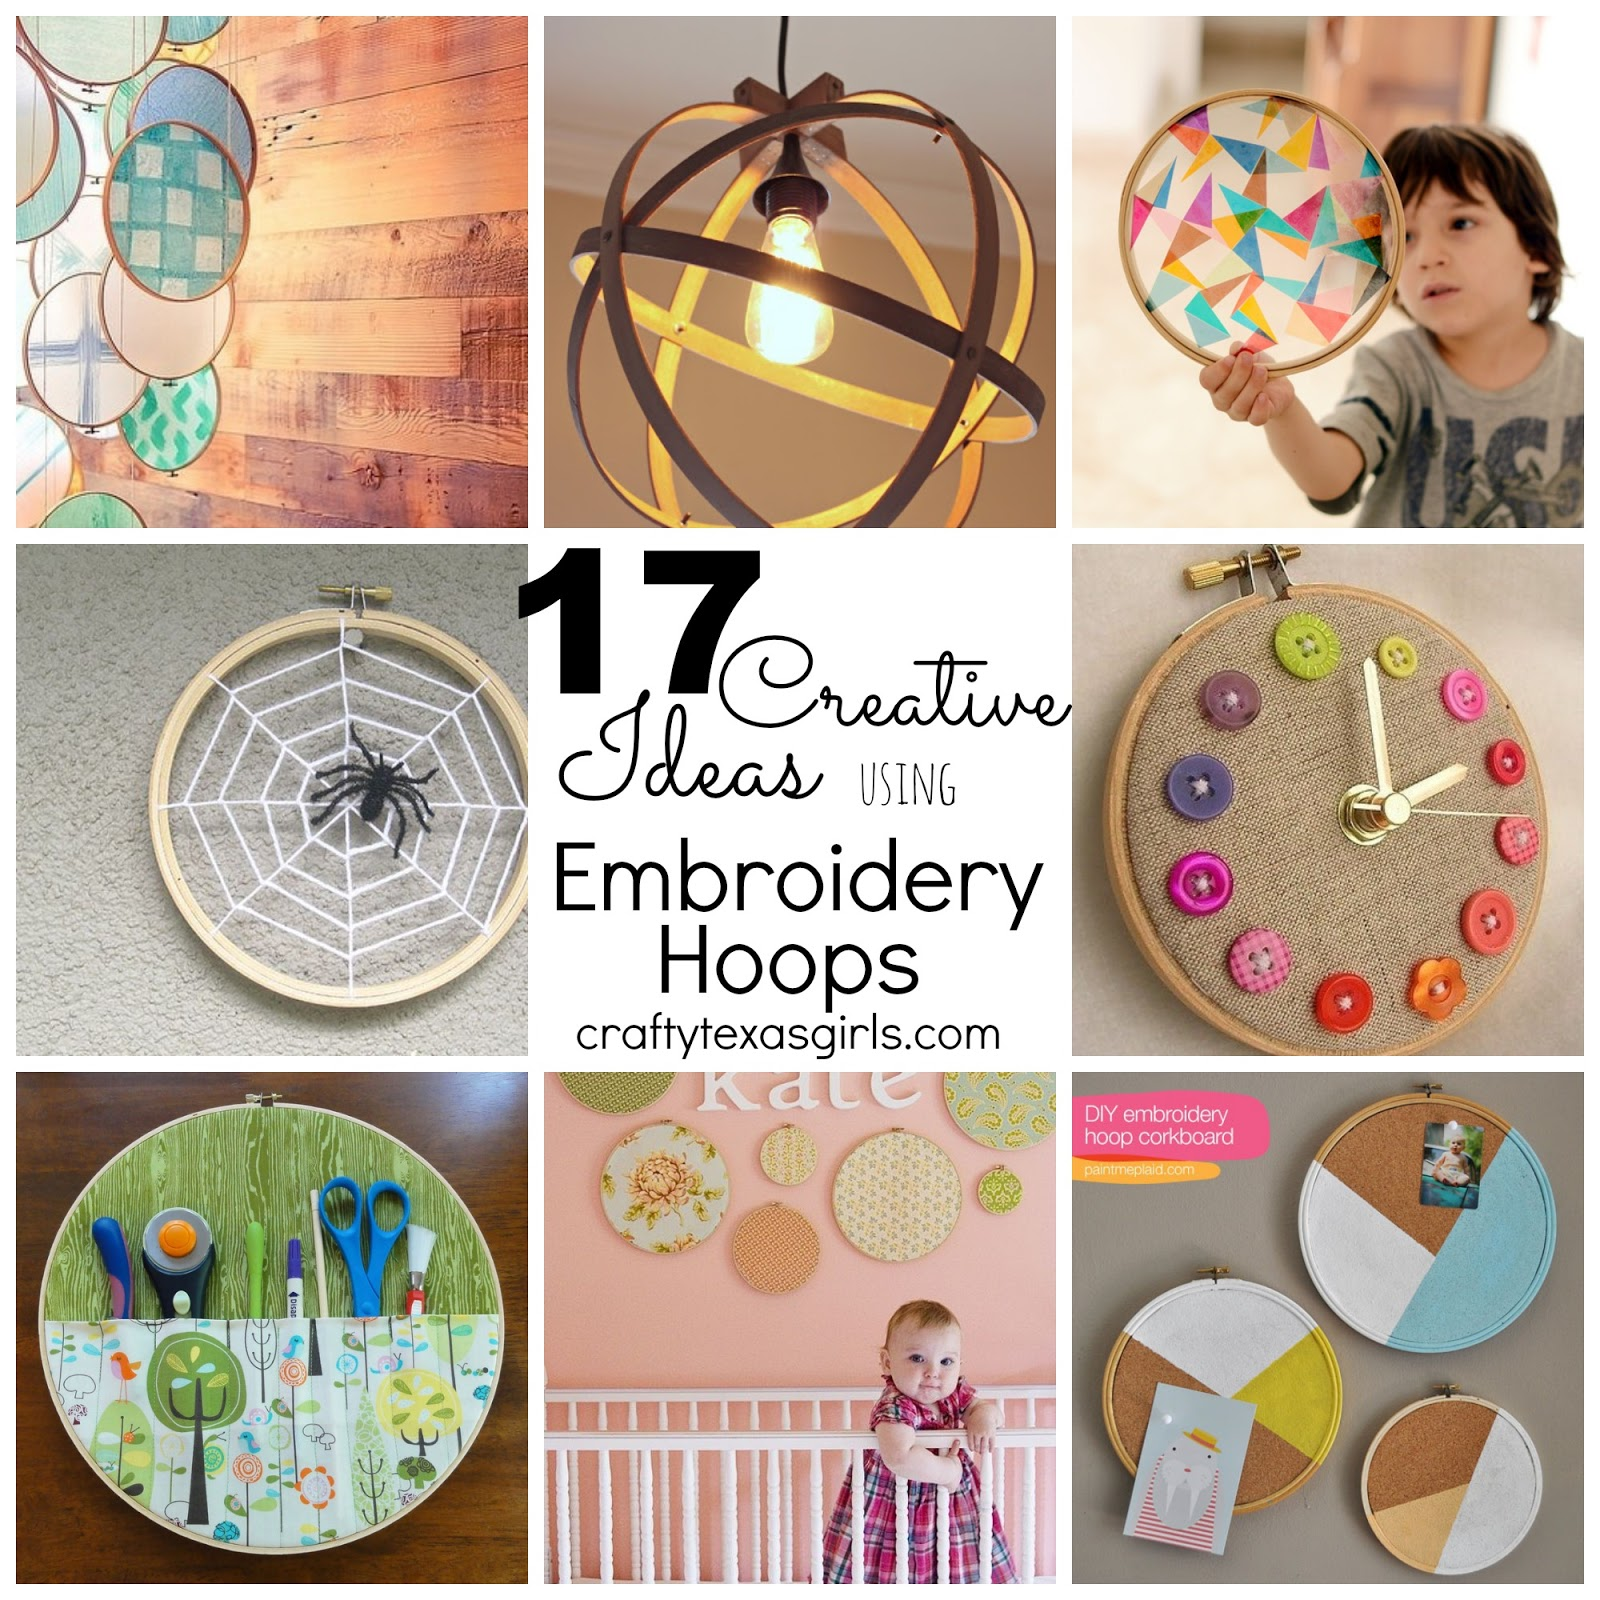 How to Use Embroidery Hoops for Crafts